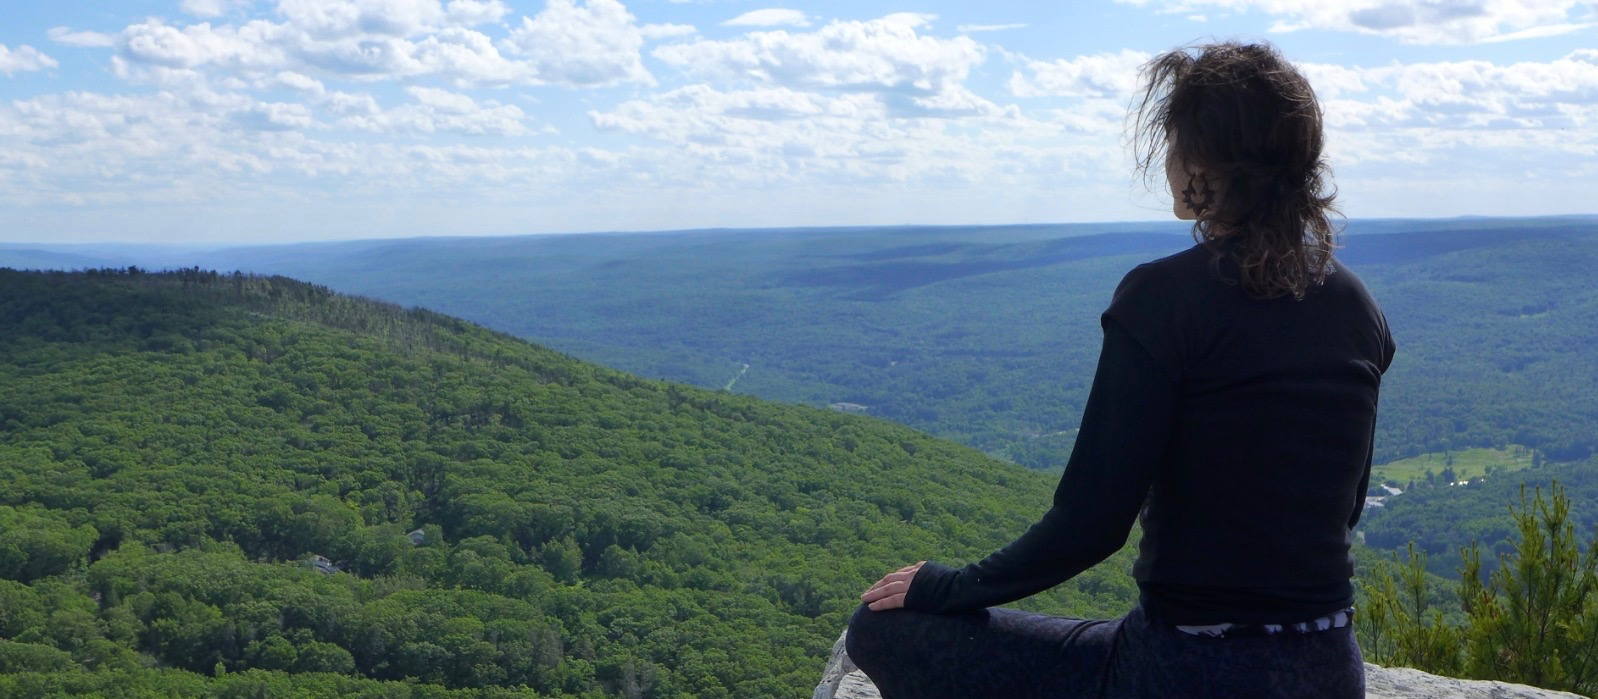 Girl meditating on a mountaintop